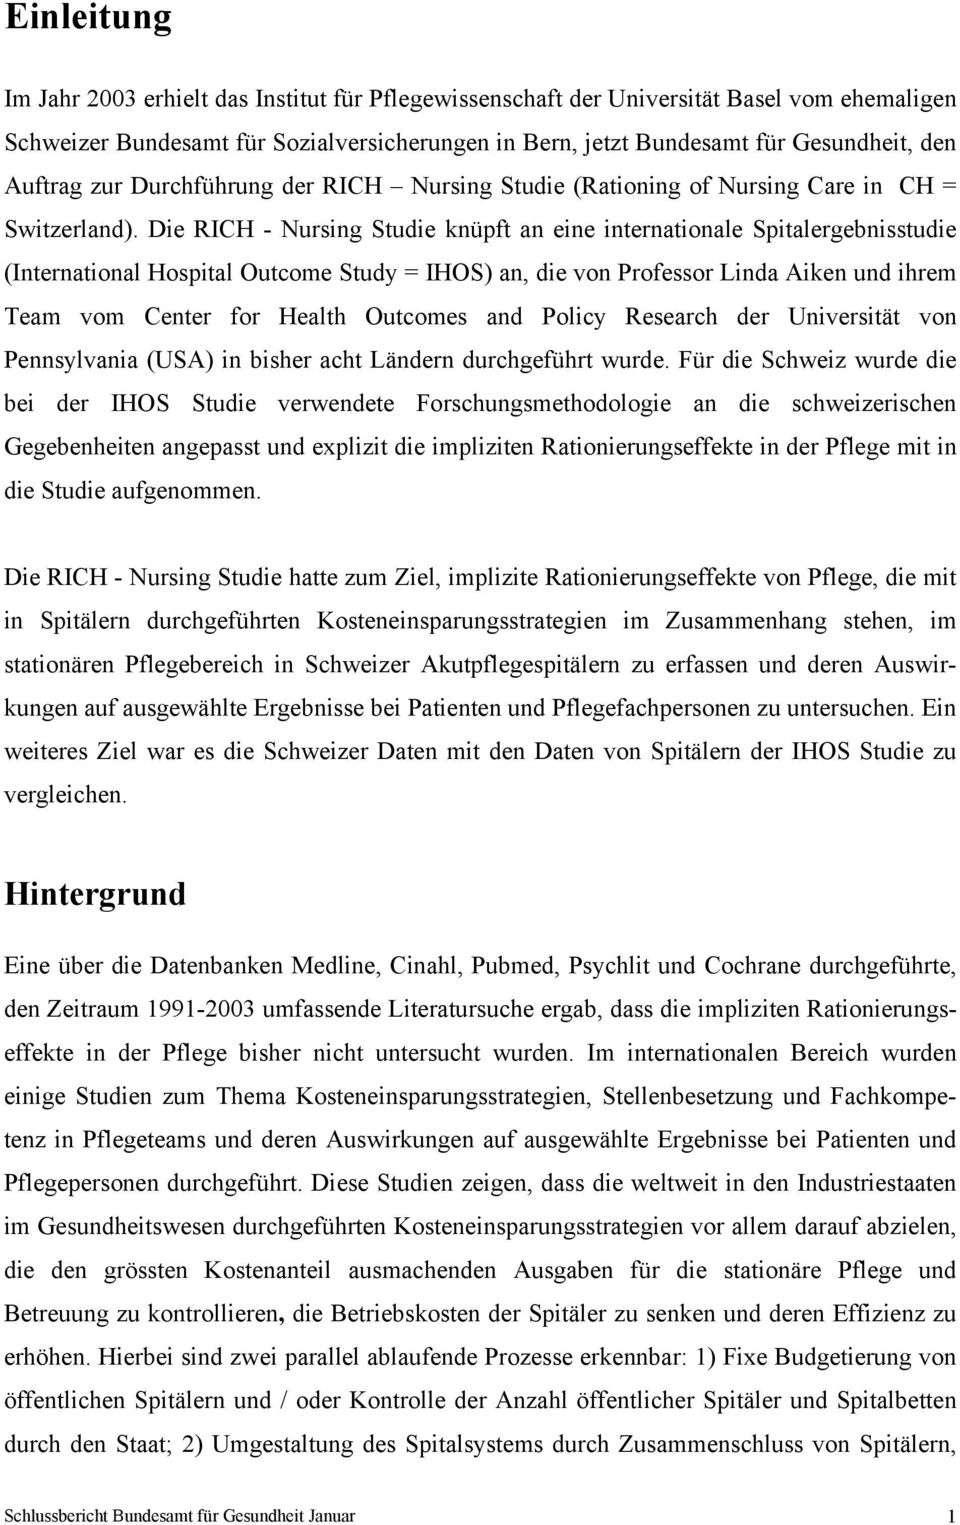 Die RICH - Nursing Studie knüpft an eine internationale Spitalergebnisstudie (International Hospital Outcome Study = IHOS) an, die von Professor Linda Aiken und ihrem Team vom Center for Health